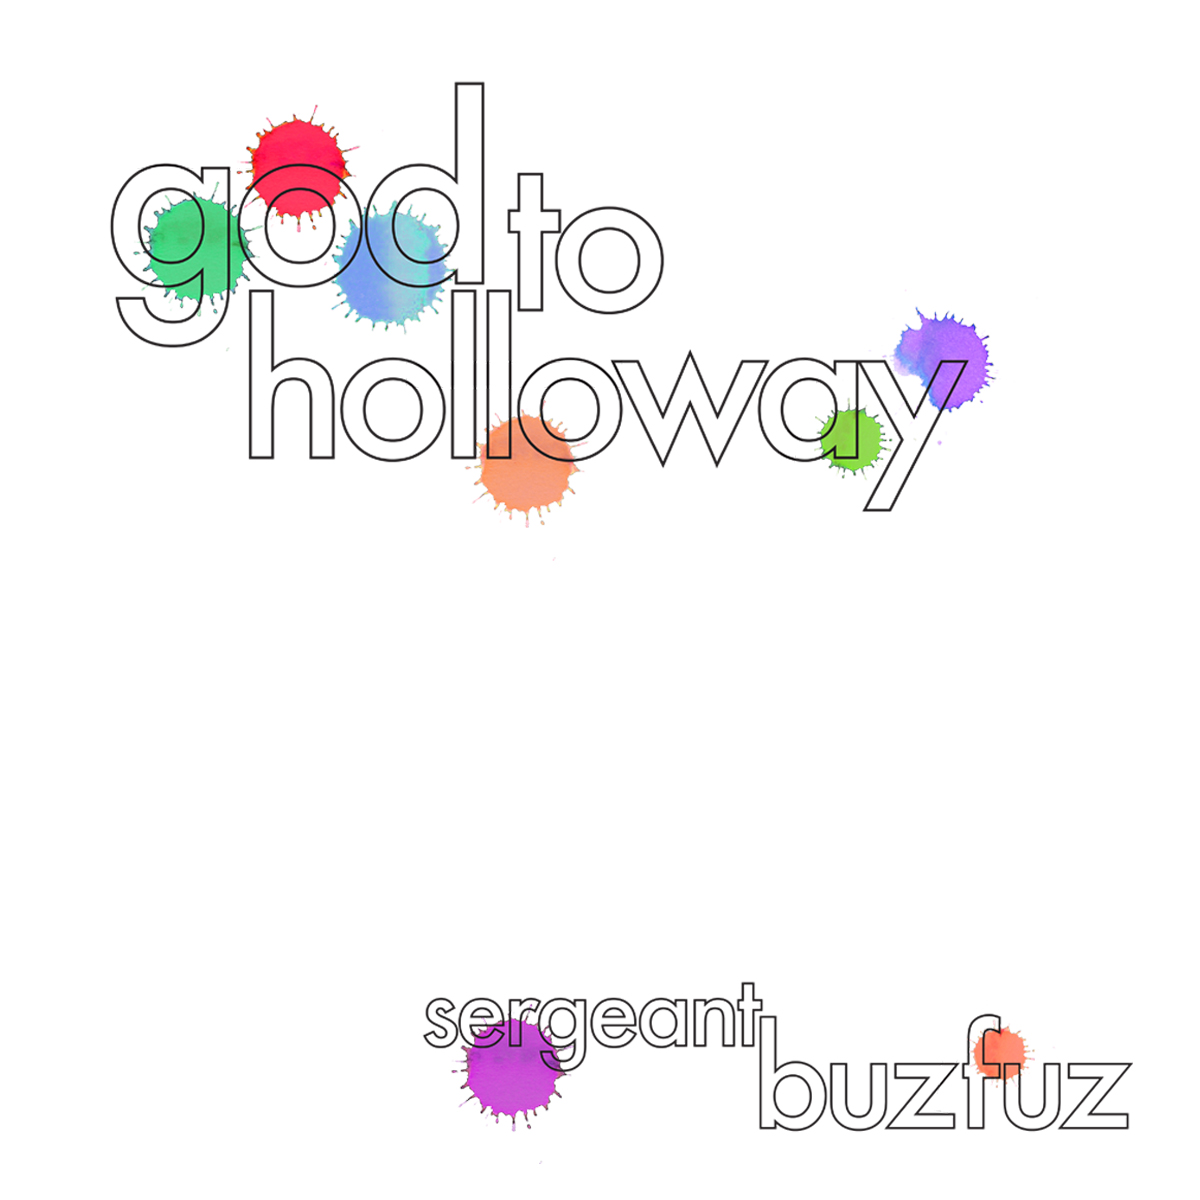 Sergeant Buzfuz - God To Holloway